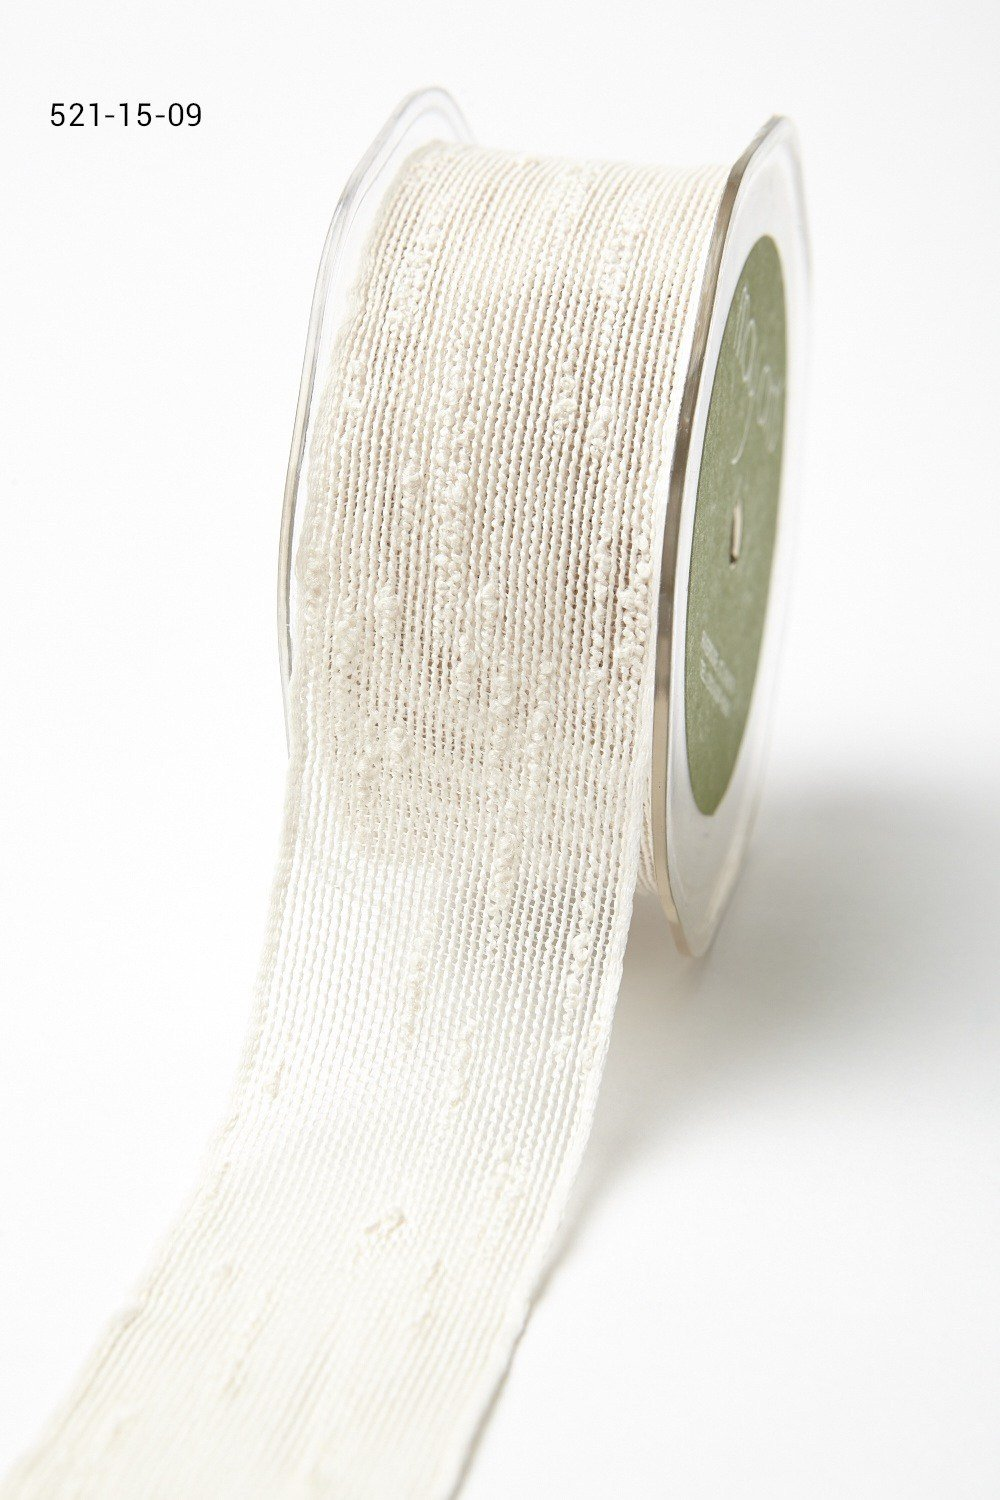 1.5 Inch Pulled Thread Ribbon with Woven Edge